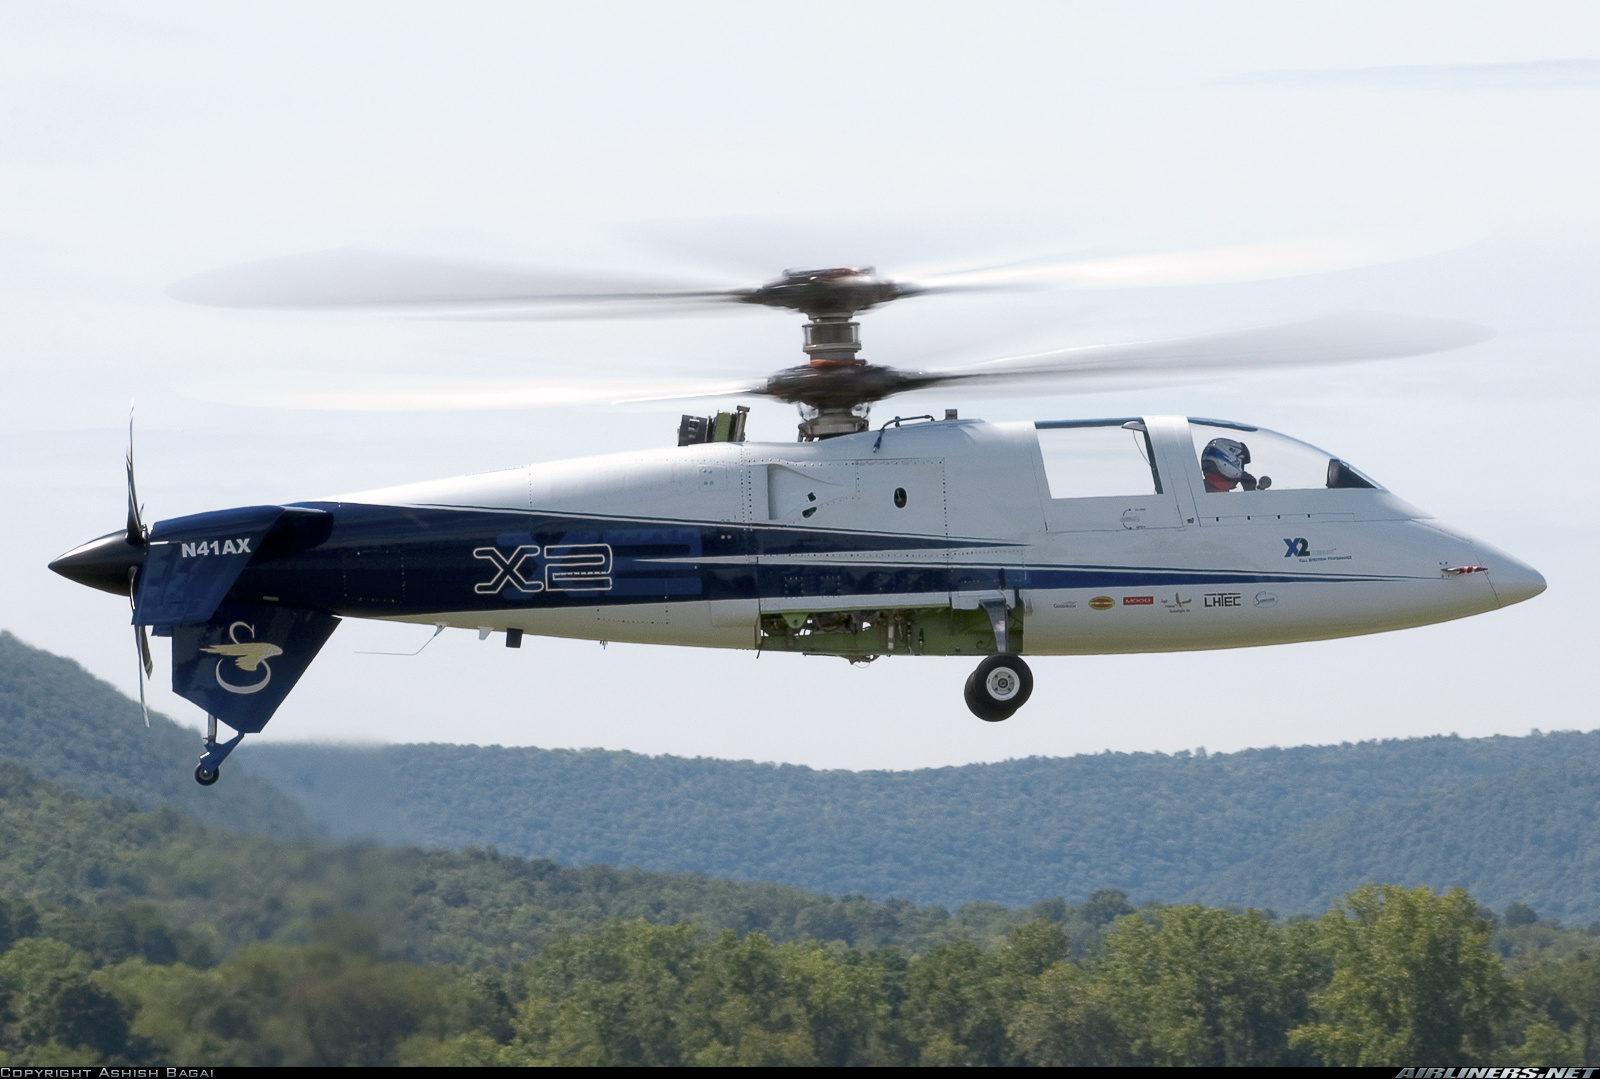 Elicottero Sikorsky : Winncad elements sikorsky aircraft unveils technology